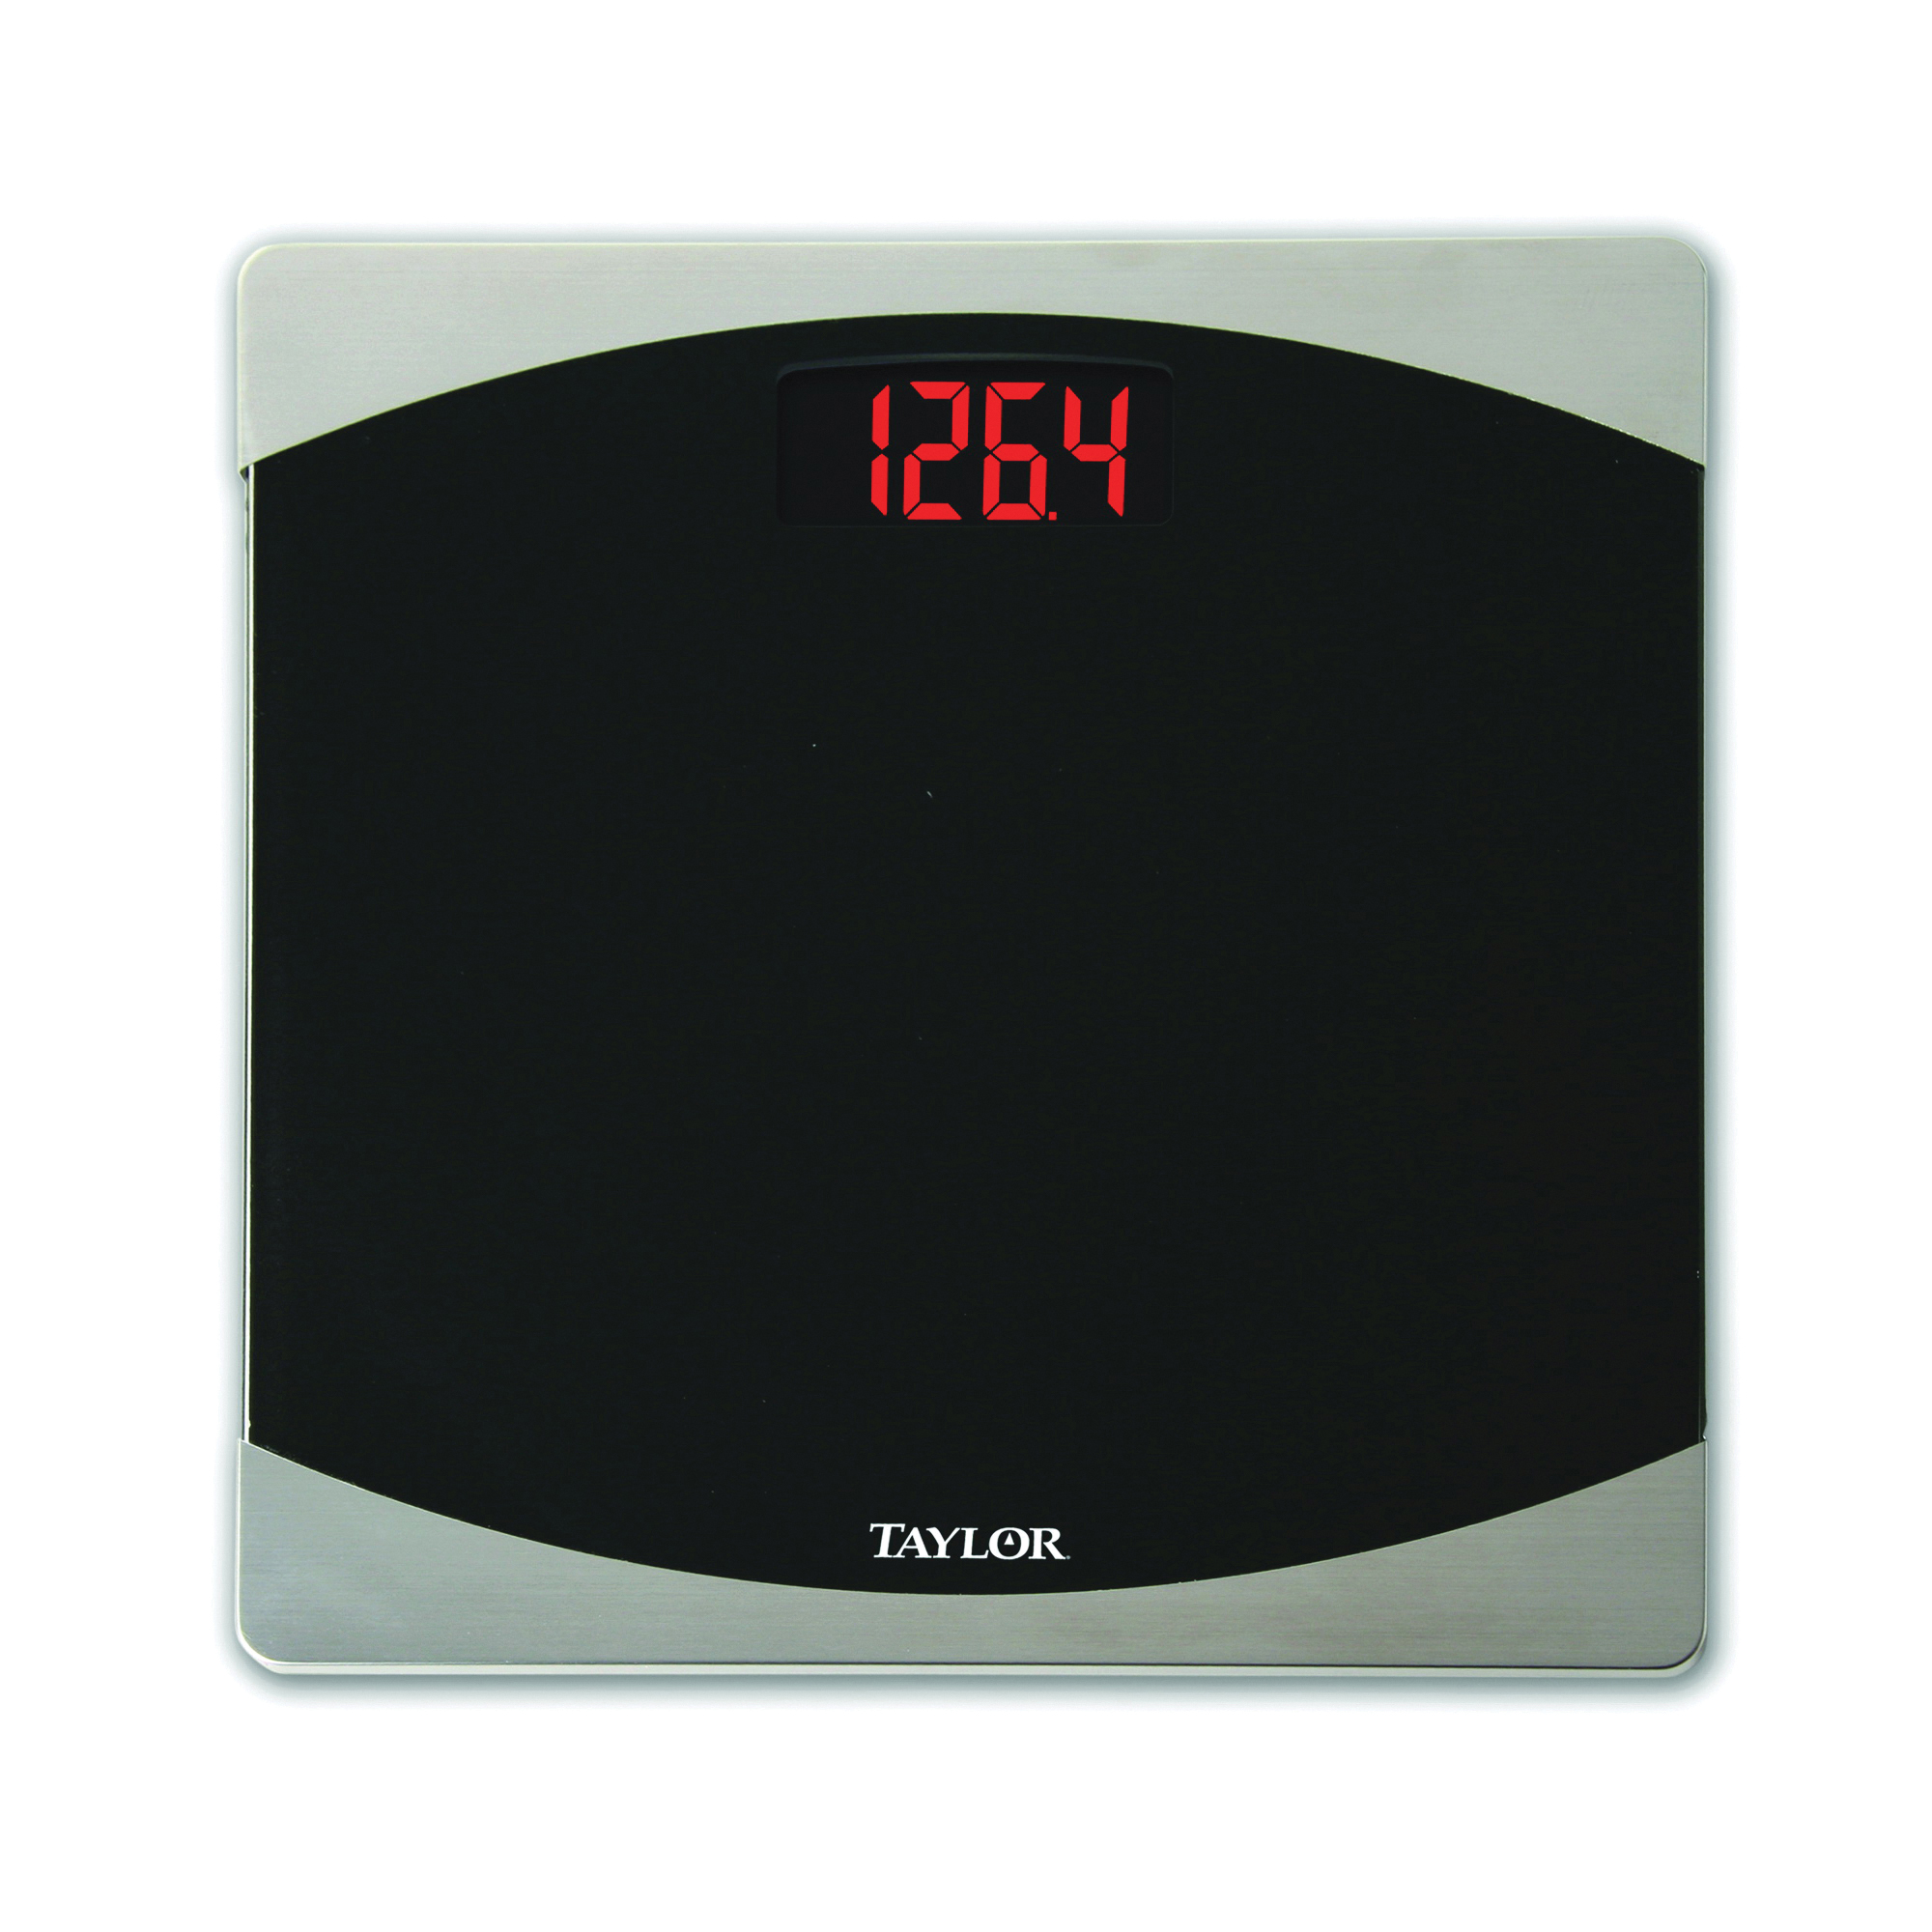 Picture of Taylor 7562 Bathroom Scale, 400 lb Capacity, LCD Display, Glass Housing Material, Black, 12 in OAW, 12 in OAD